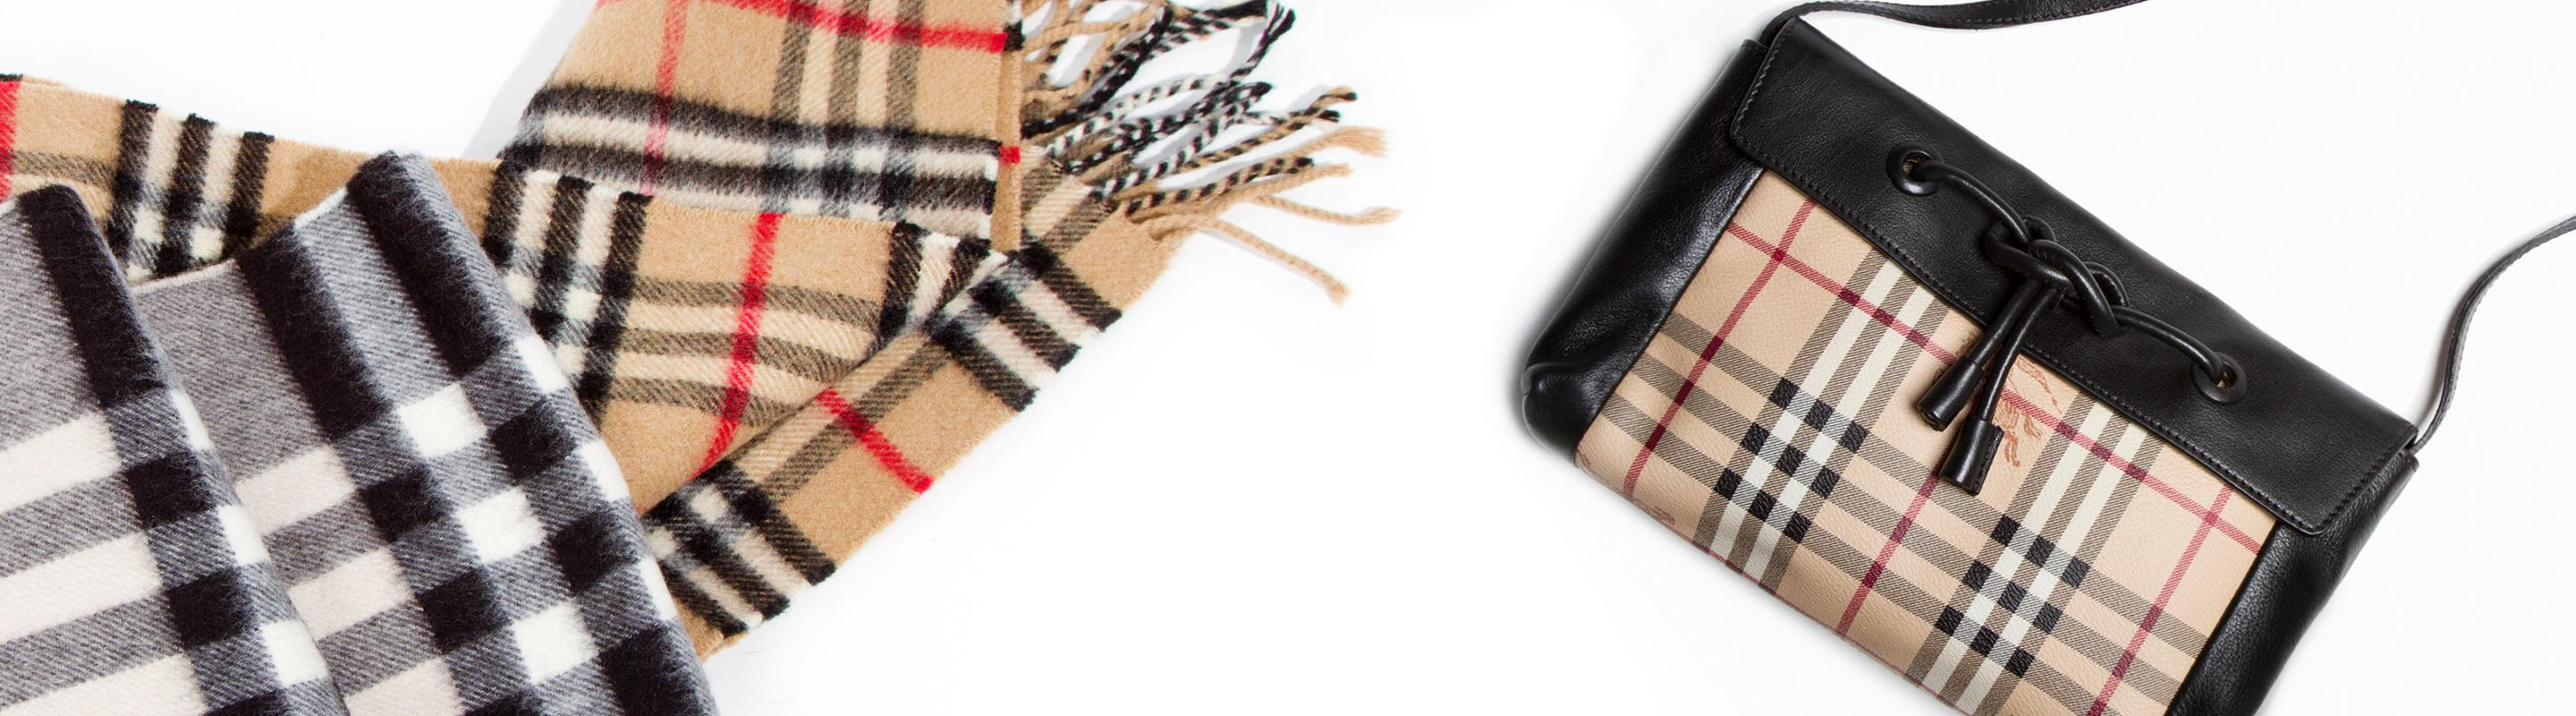 burberry scarf sale outlet review vdw4  burberry scarf sale outlet review